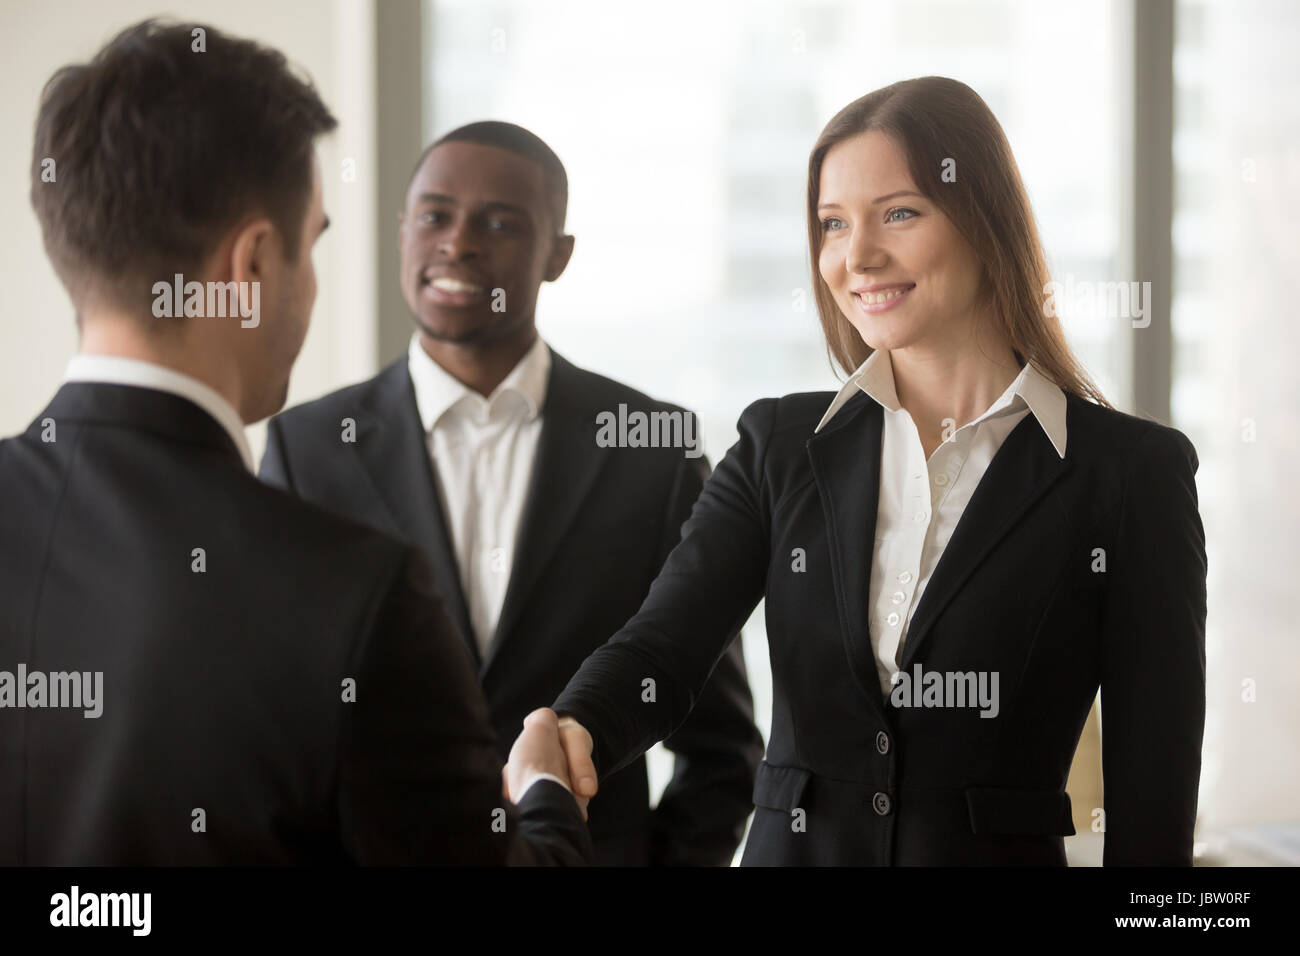 Beautiful smiling businesswoman and businessman handshaking standing in office, nice to meet you, first impression, - Stock Image